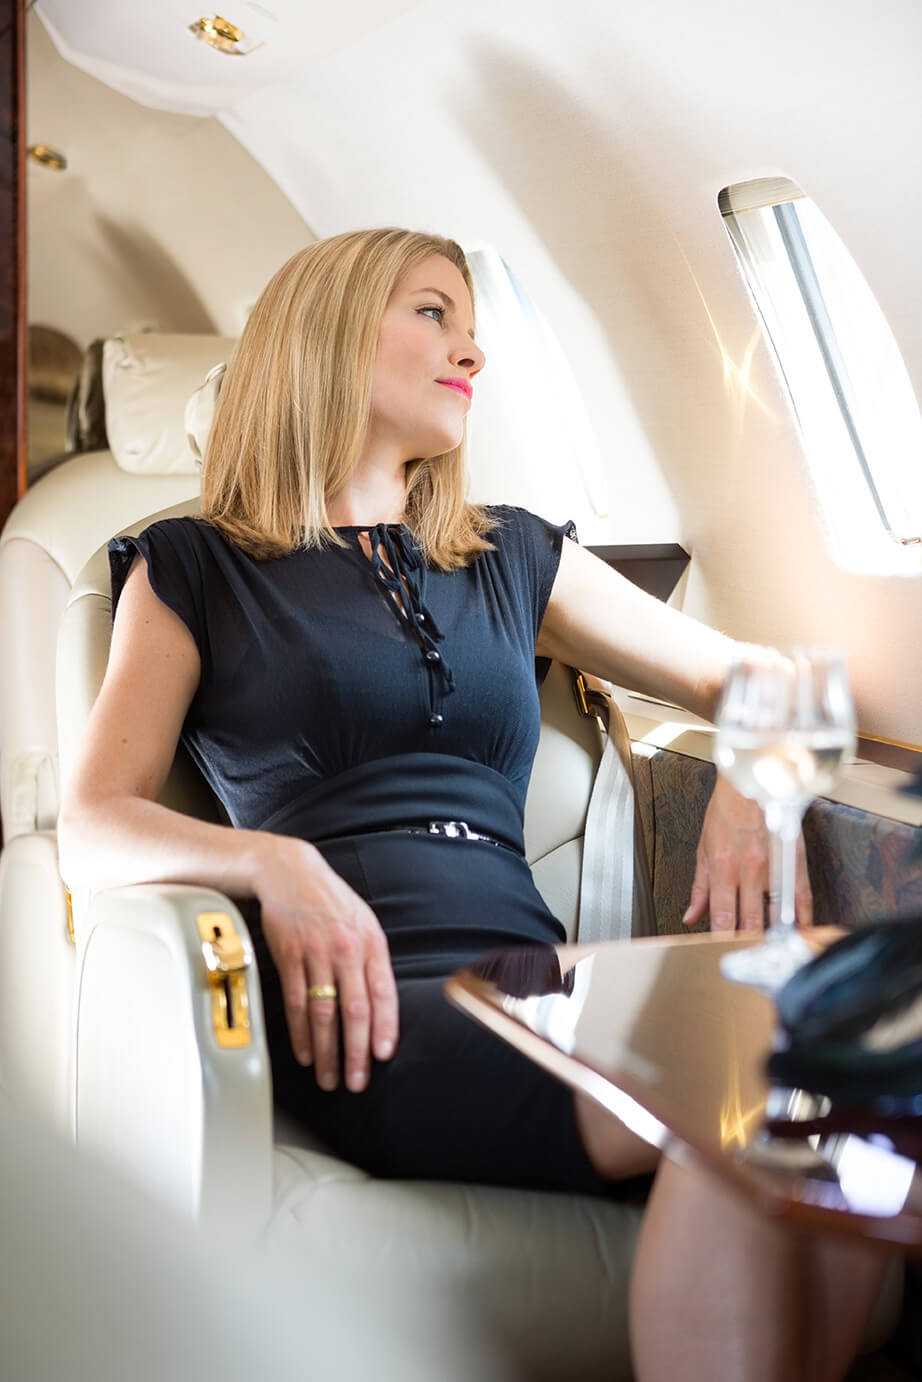 Lady Relaxing Inside Private Jet